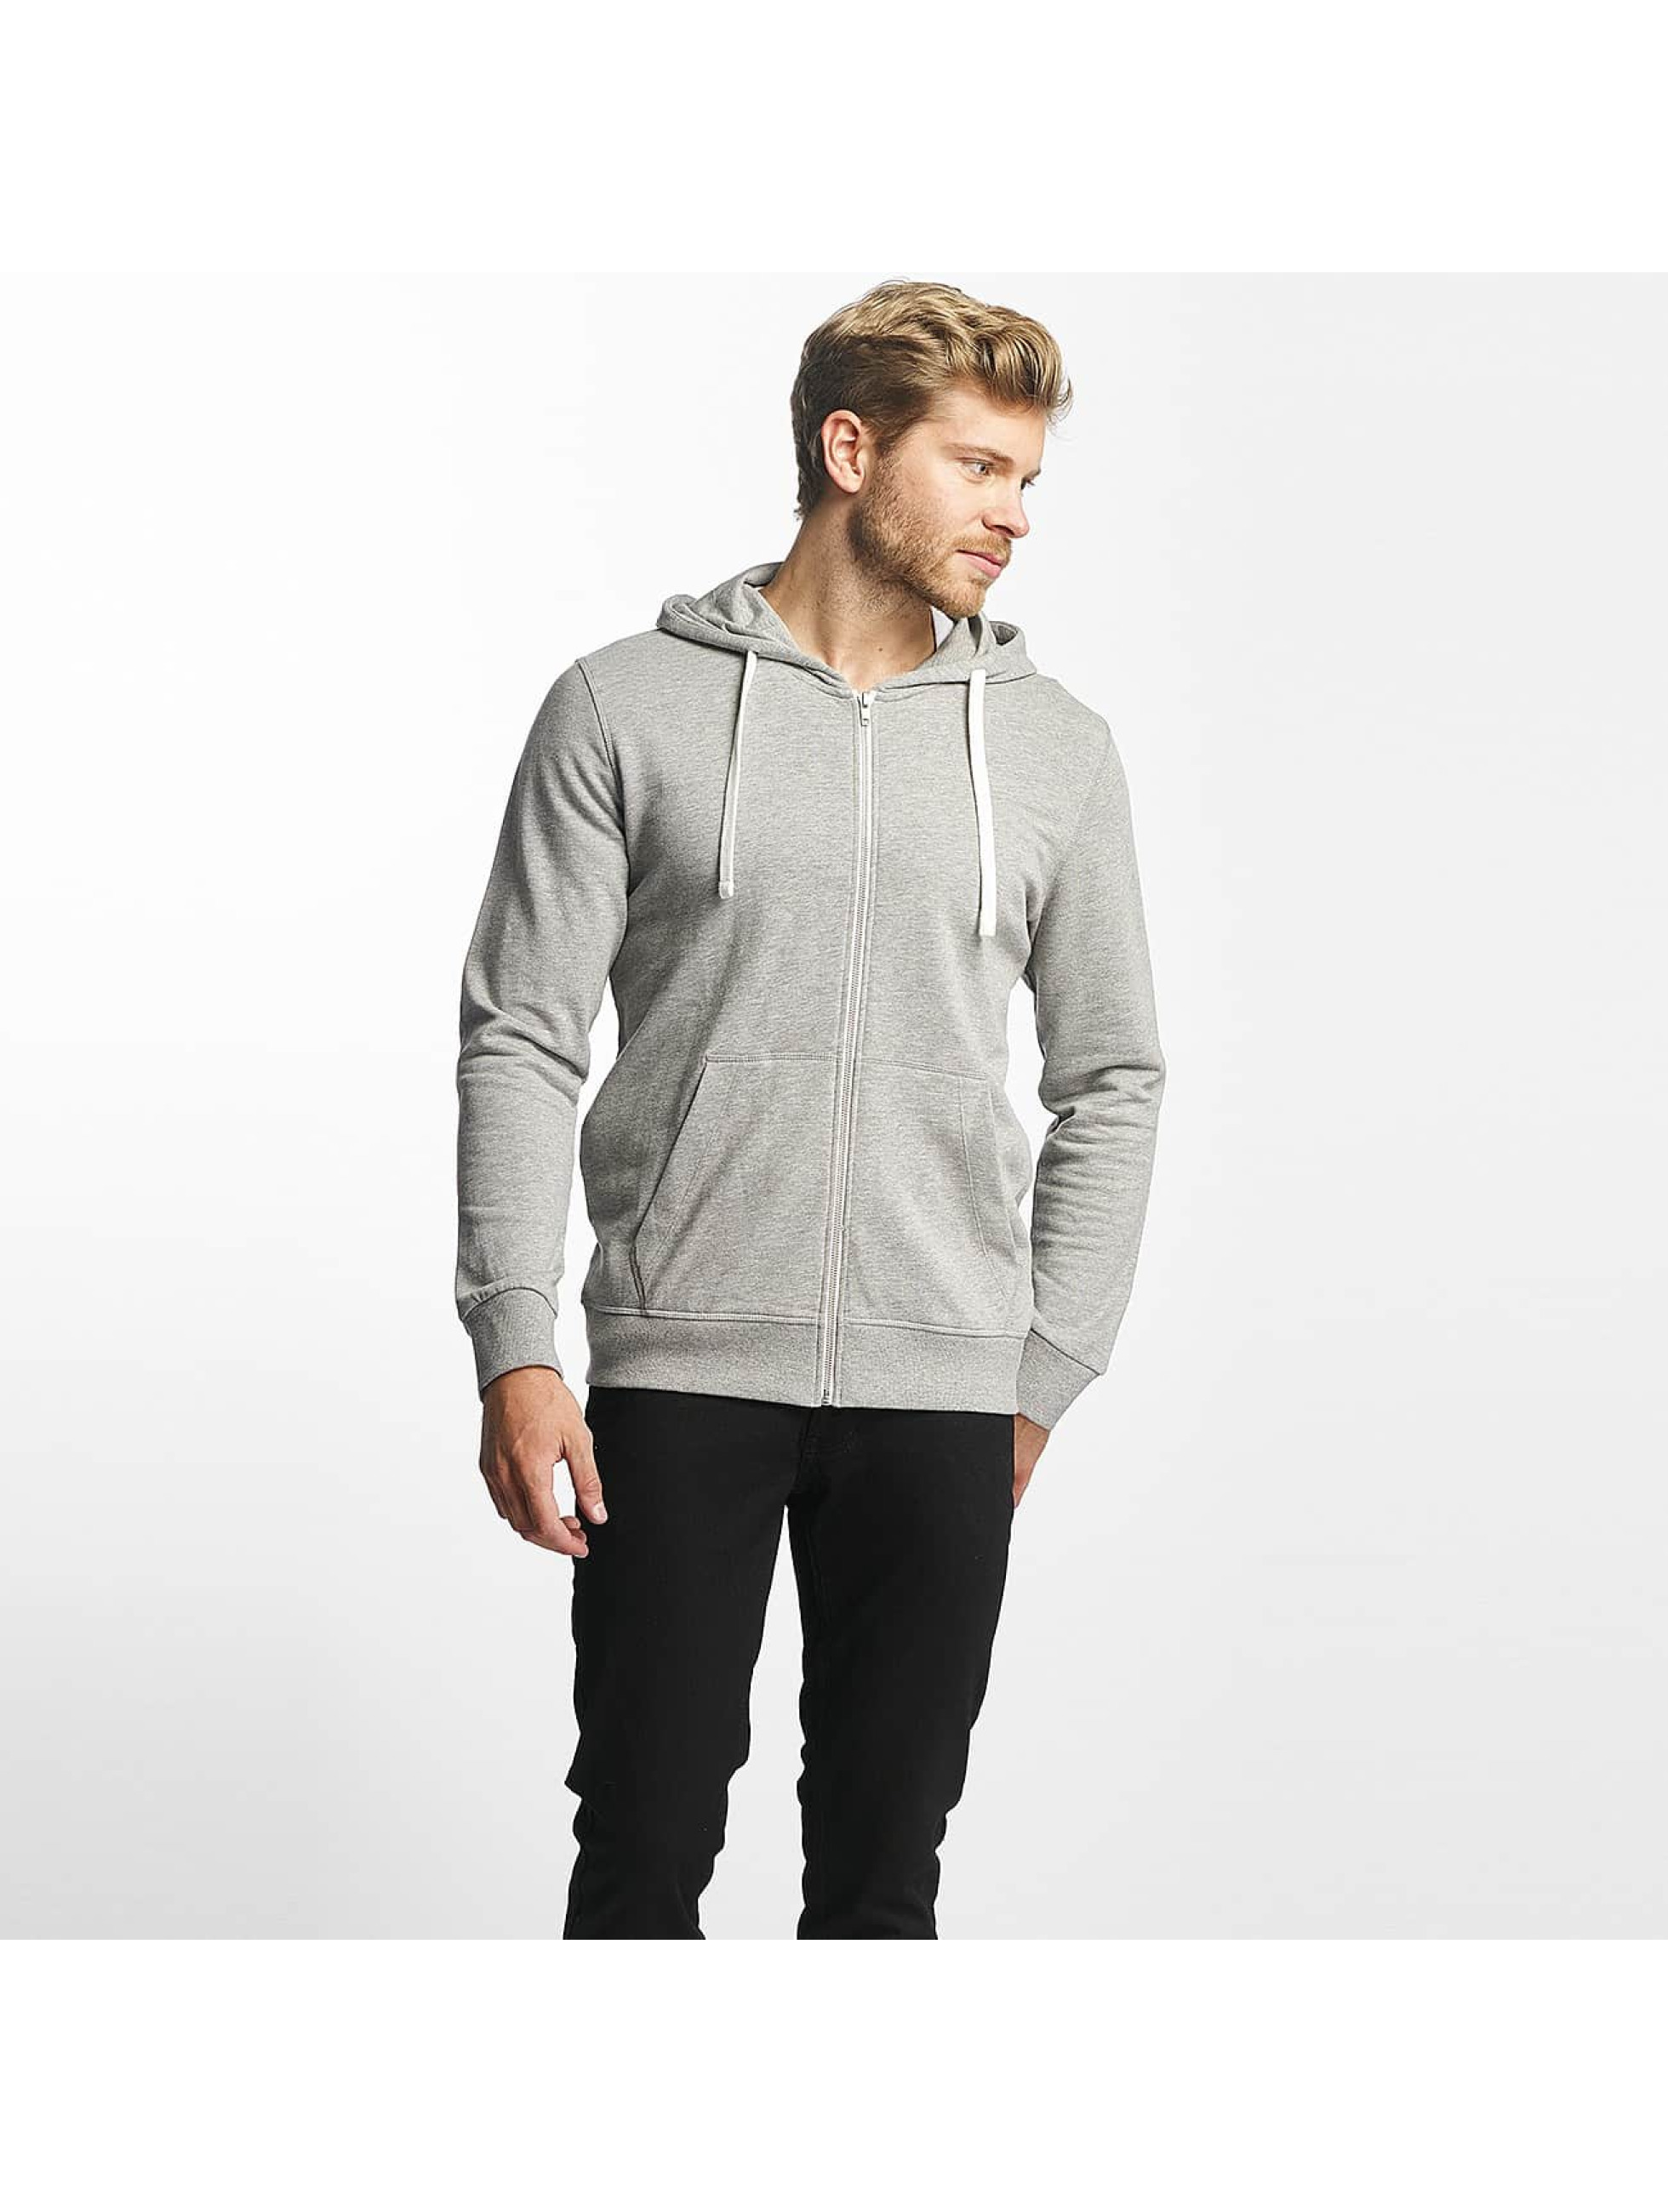 Jack & Jones Herren Sweatjacke Jorholmen light grey melange - broschei